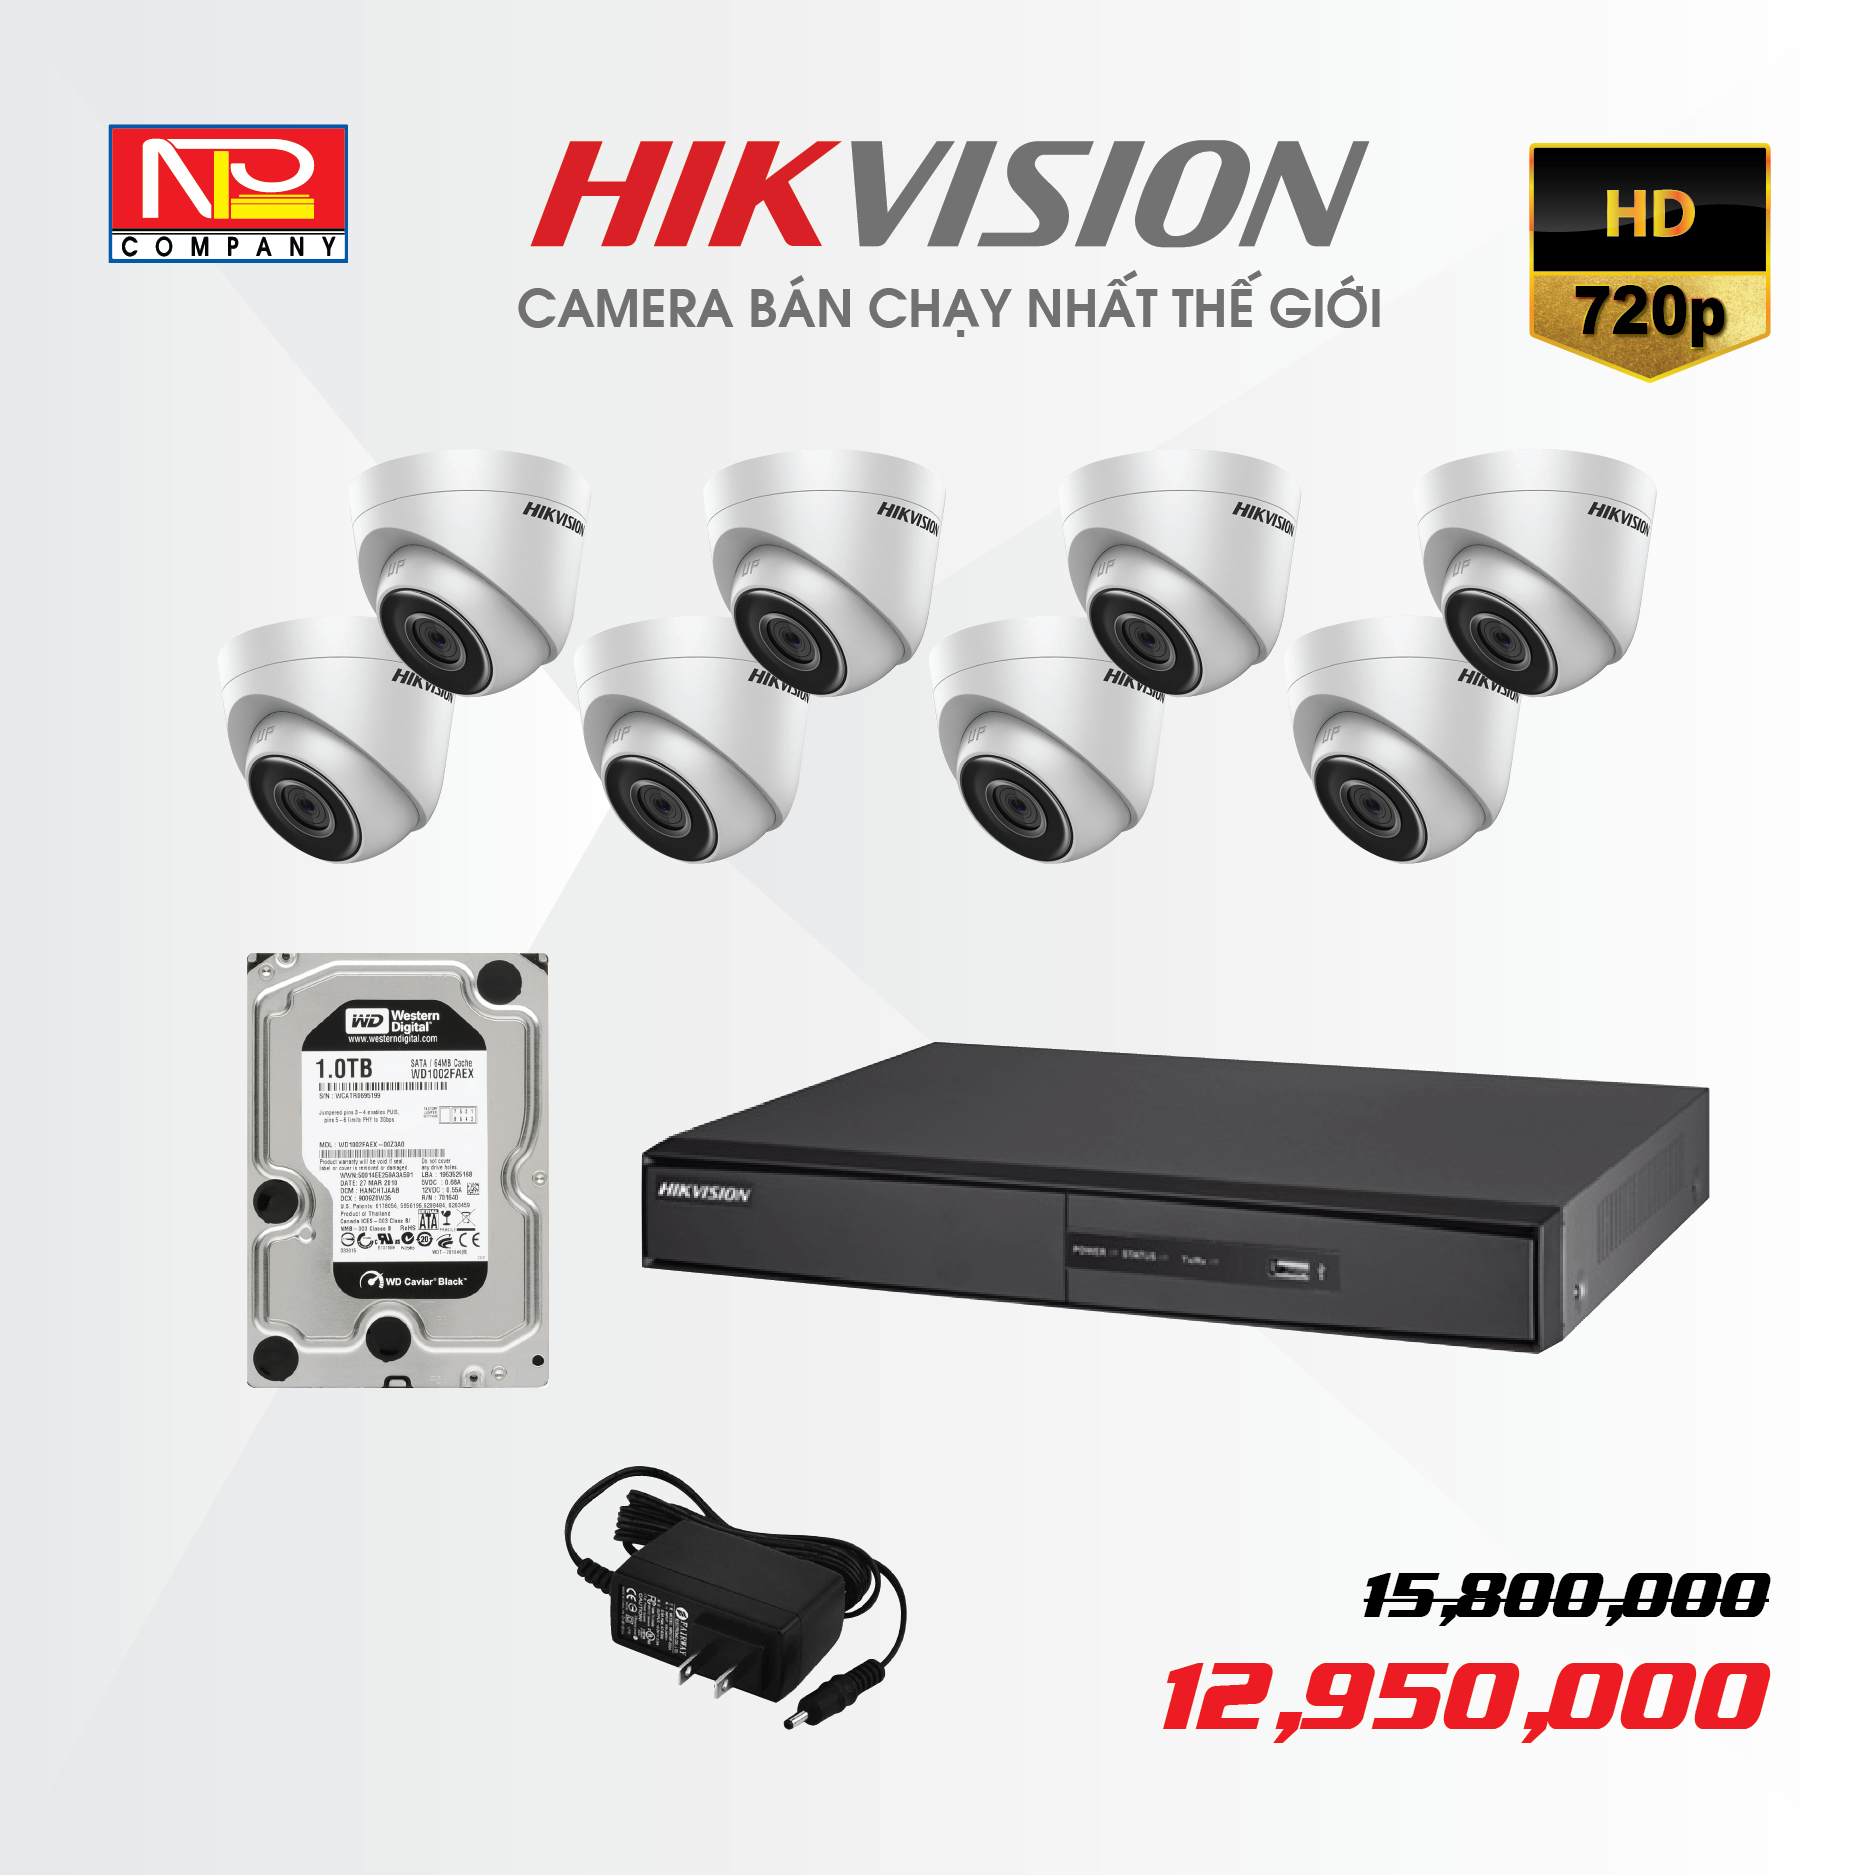 Bộ kit 8 camera IP Hikvision HD720P